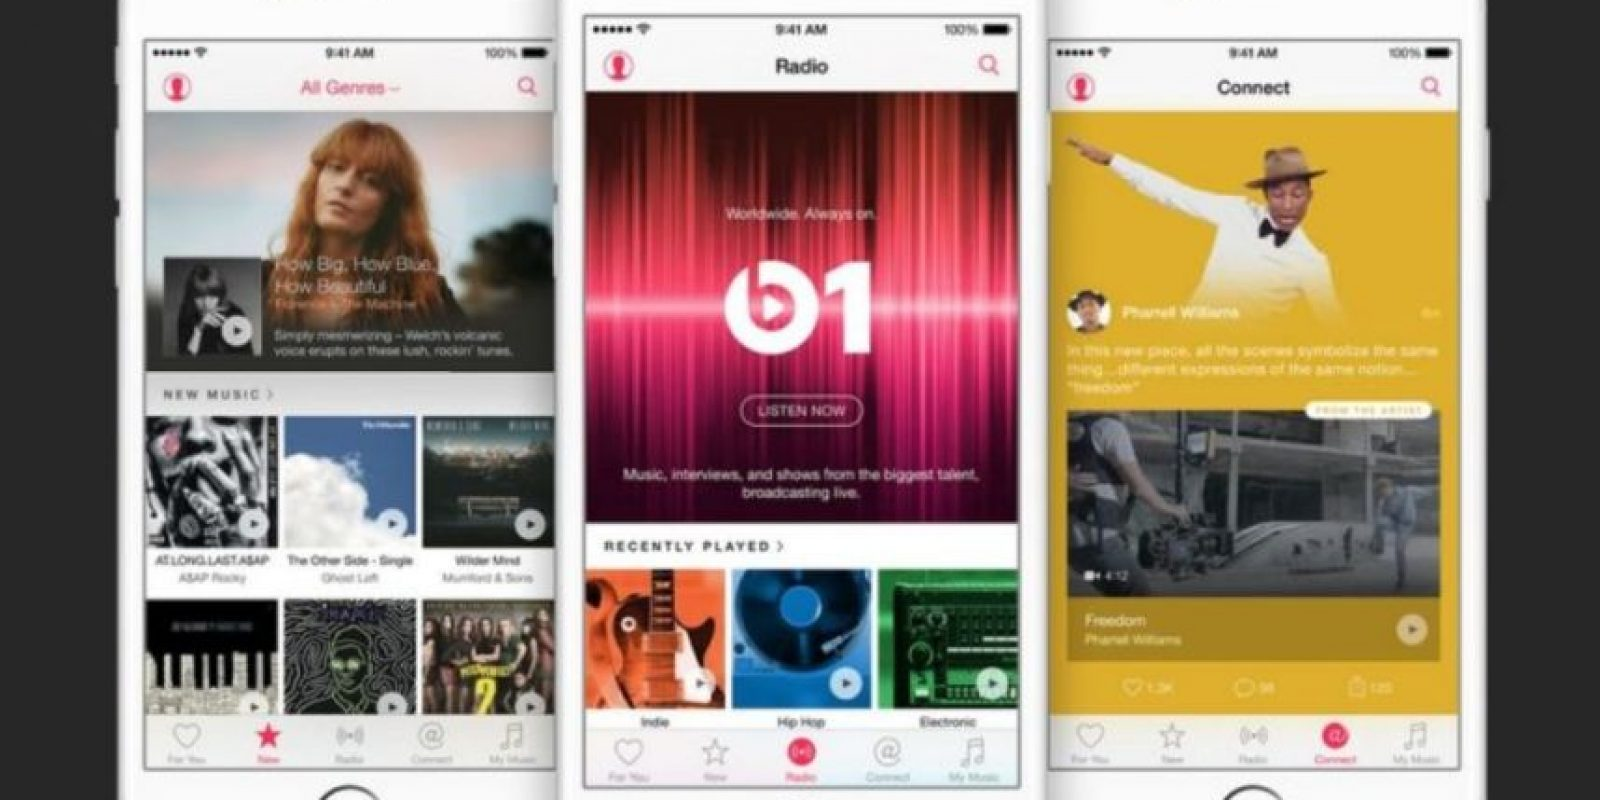 Apple Music buscará ser el nuevo monarca de la música en streaming. Foto: Apple